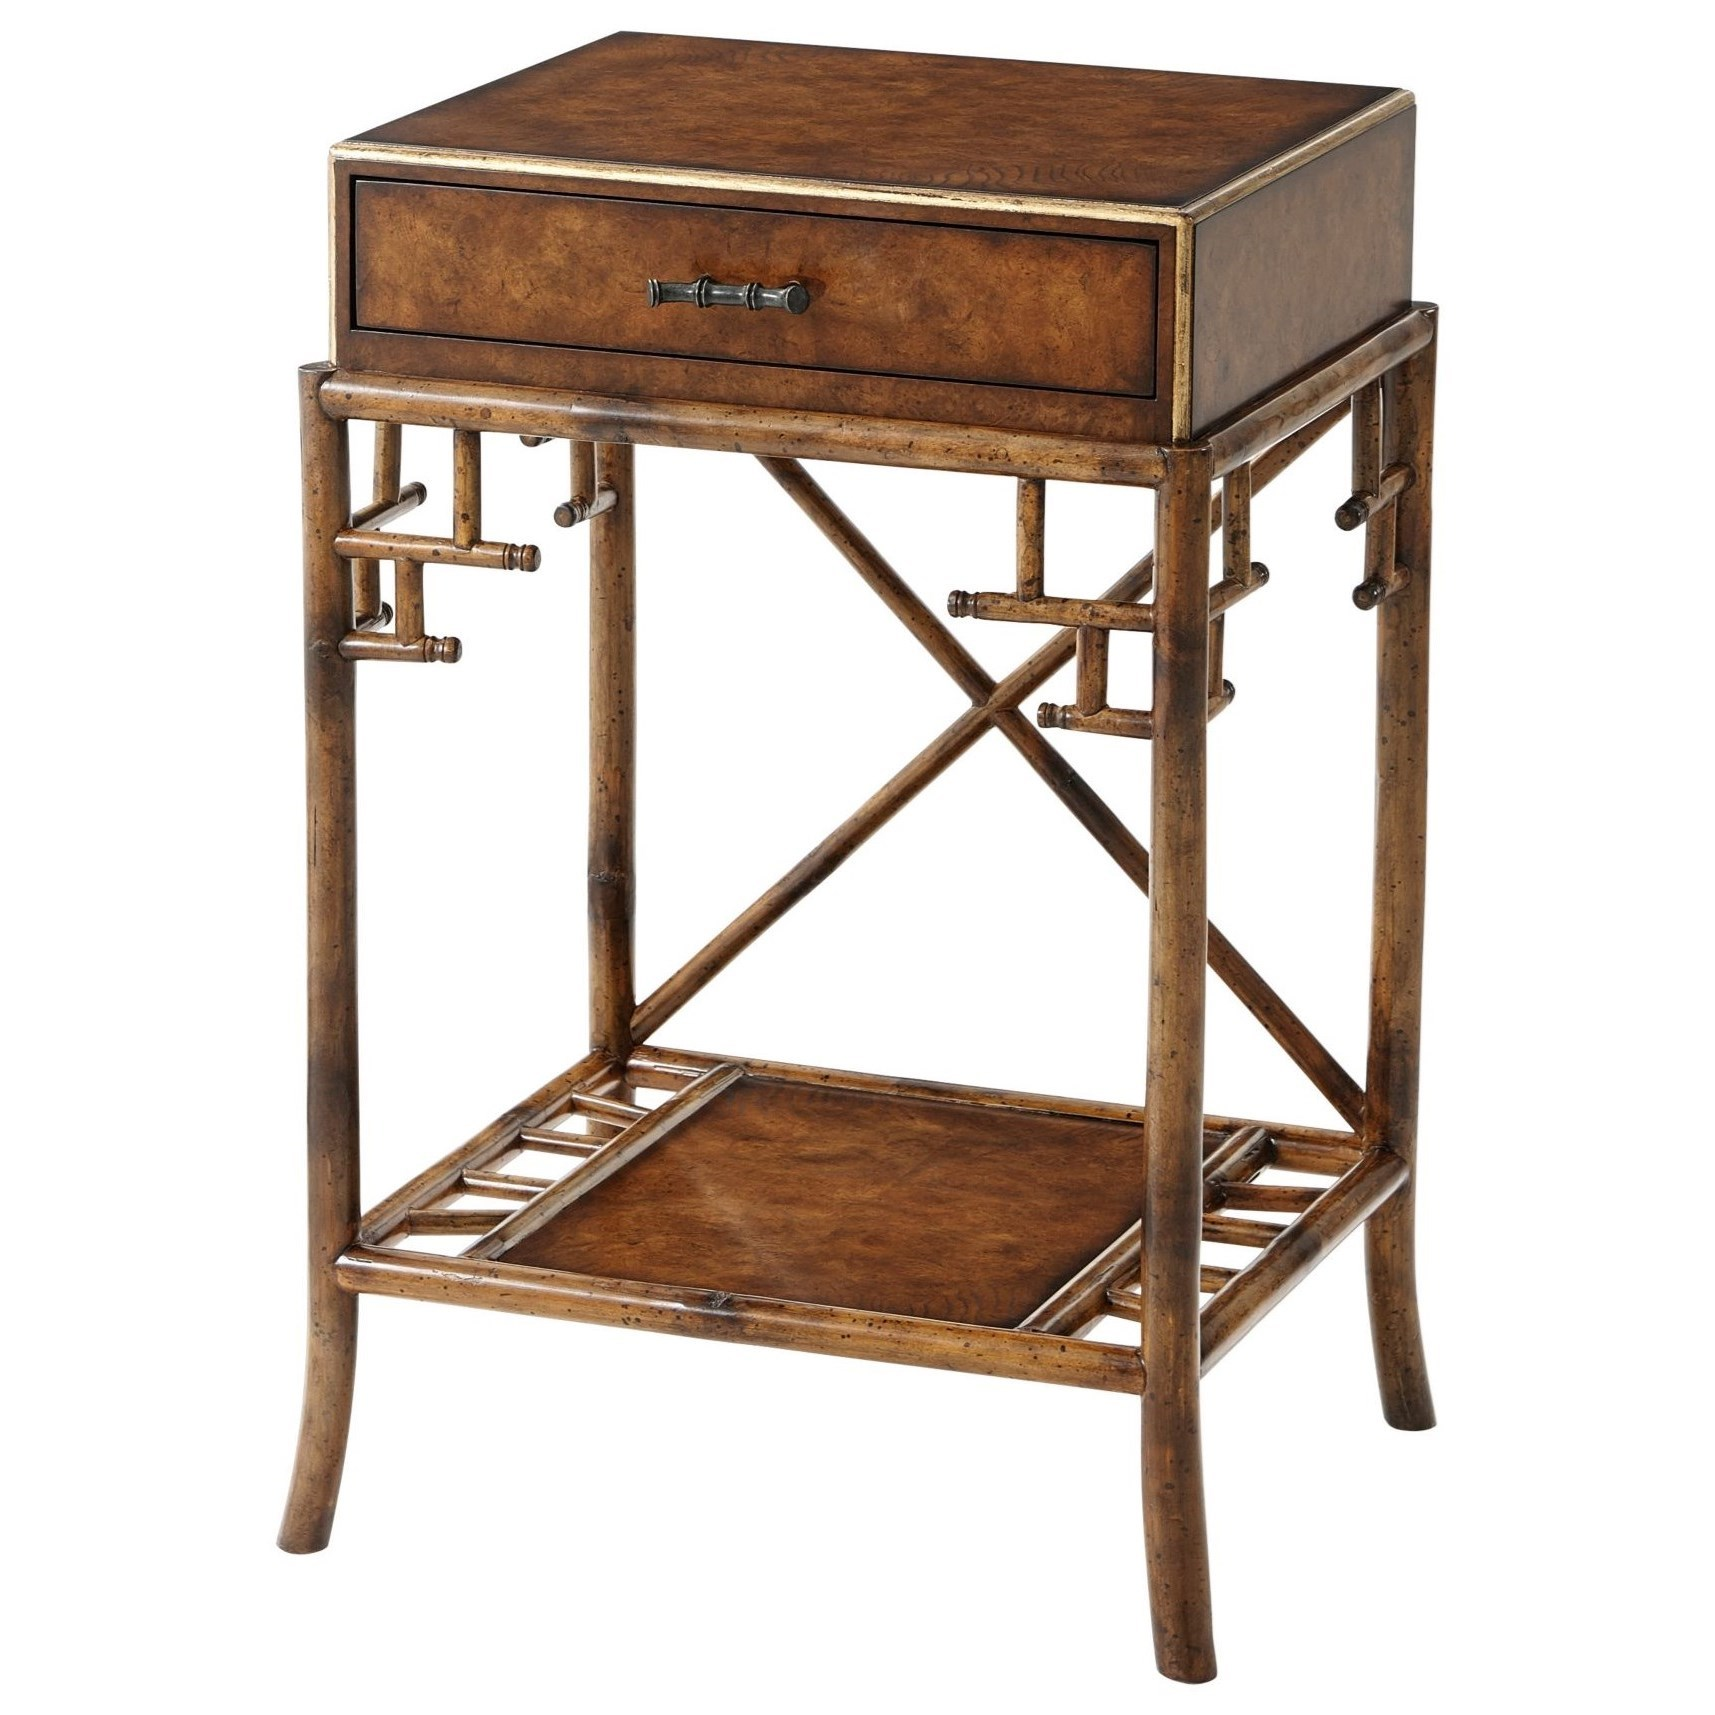 Theodore Alexander Indochine Gilt Burl Accents Lamp Table With Faux Bamboo Details Sprintz Furniture End Tables